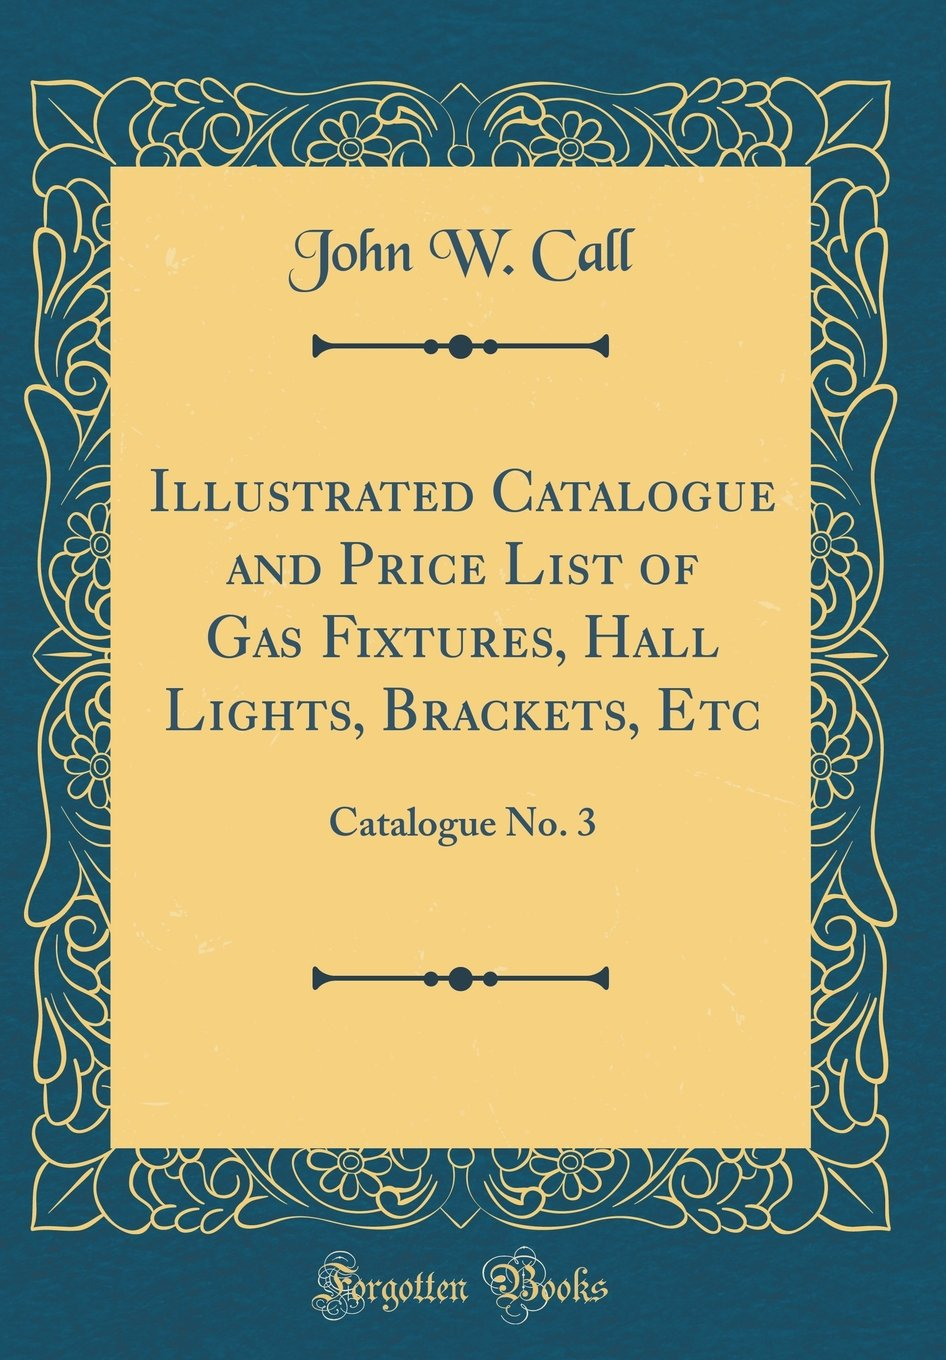 Illustrated Catalogue and Price List of Gas Fixtures, Hall Lights, Brackets, Etc: Catalogue No. 3 (Classic Reprint) ebook